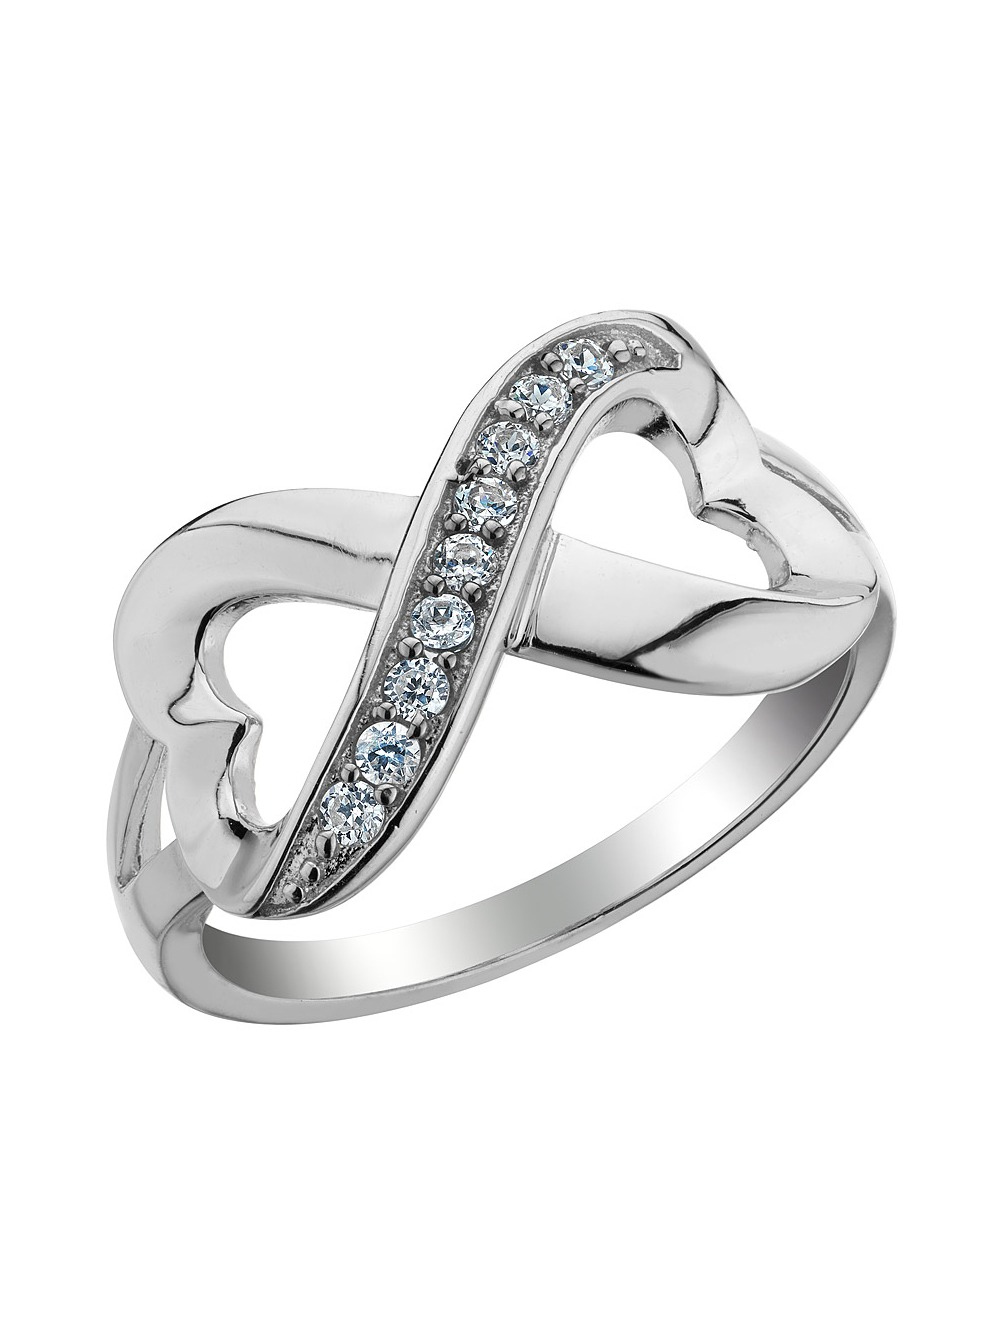 Infinite Love Double Heart Created White Topaz Ring in Sterling Silver